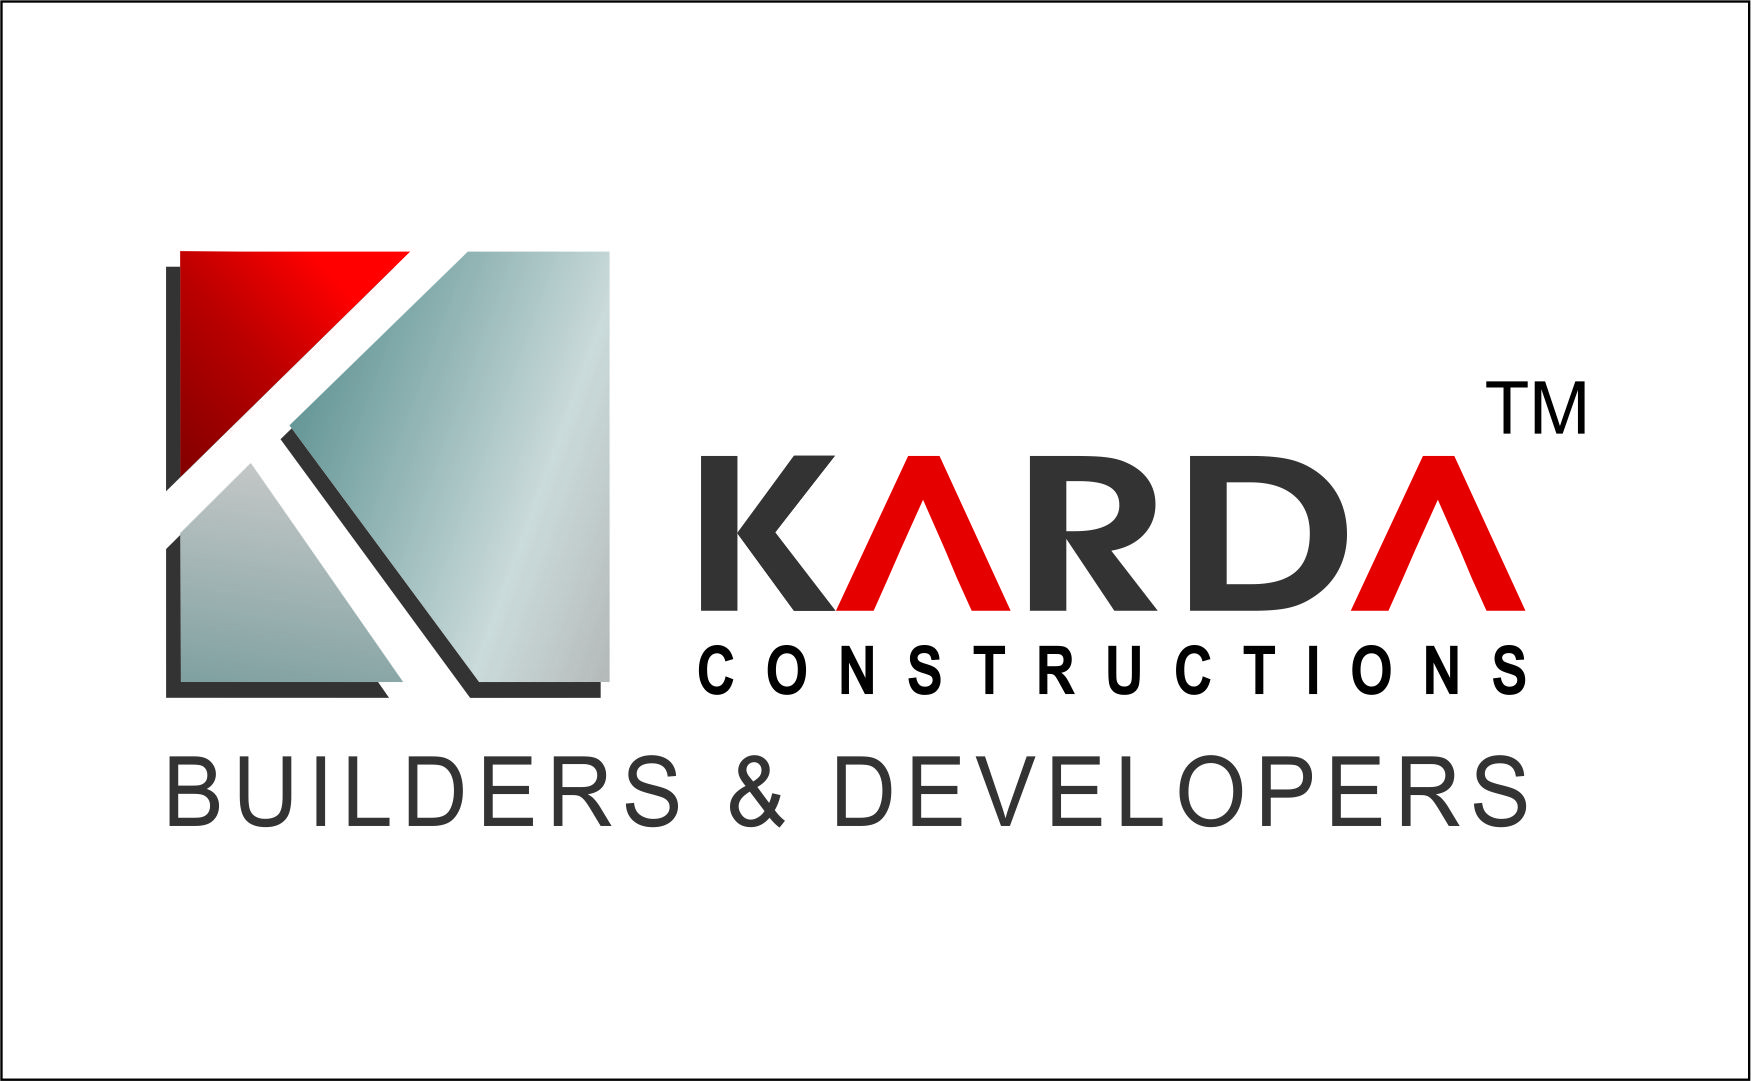 KARDA CONSTRUCTION LIMITED